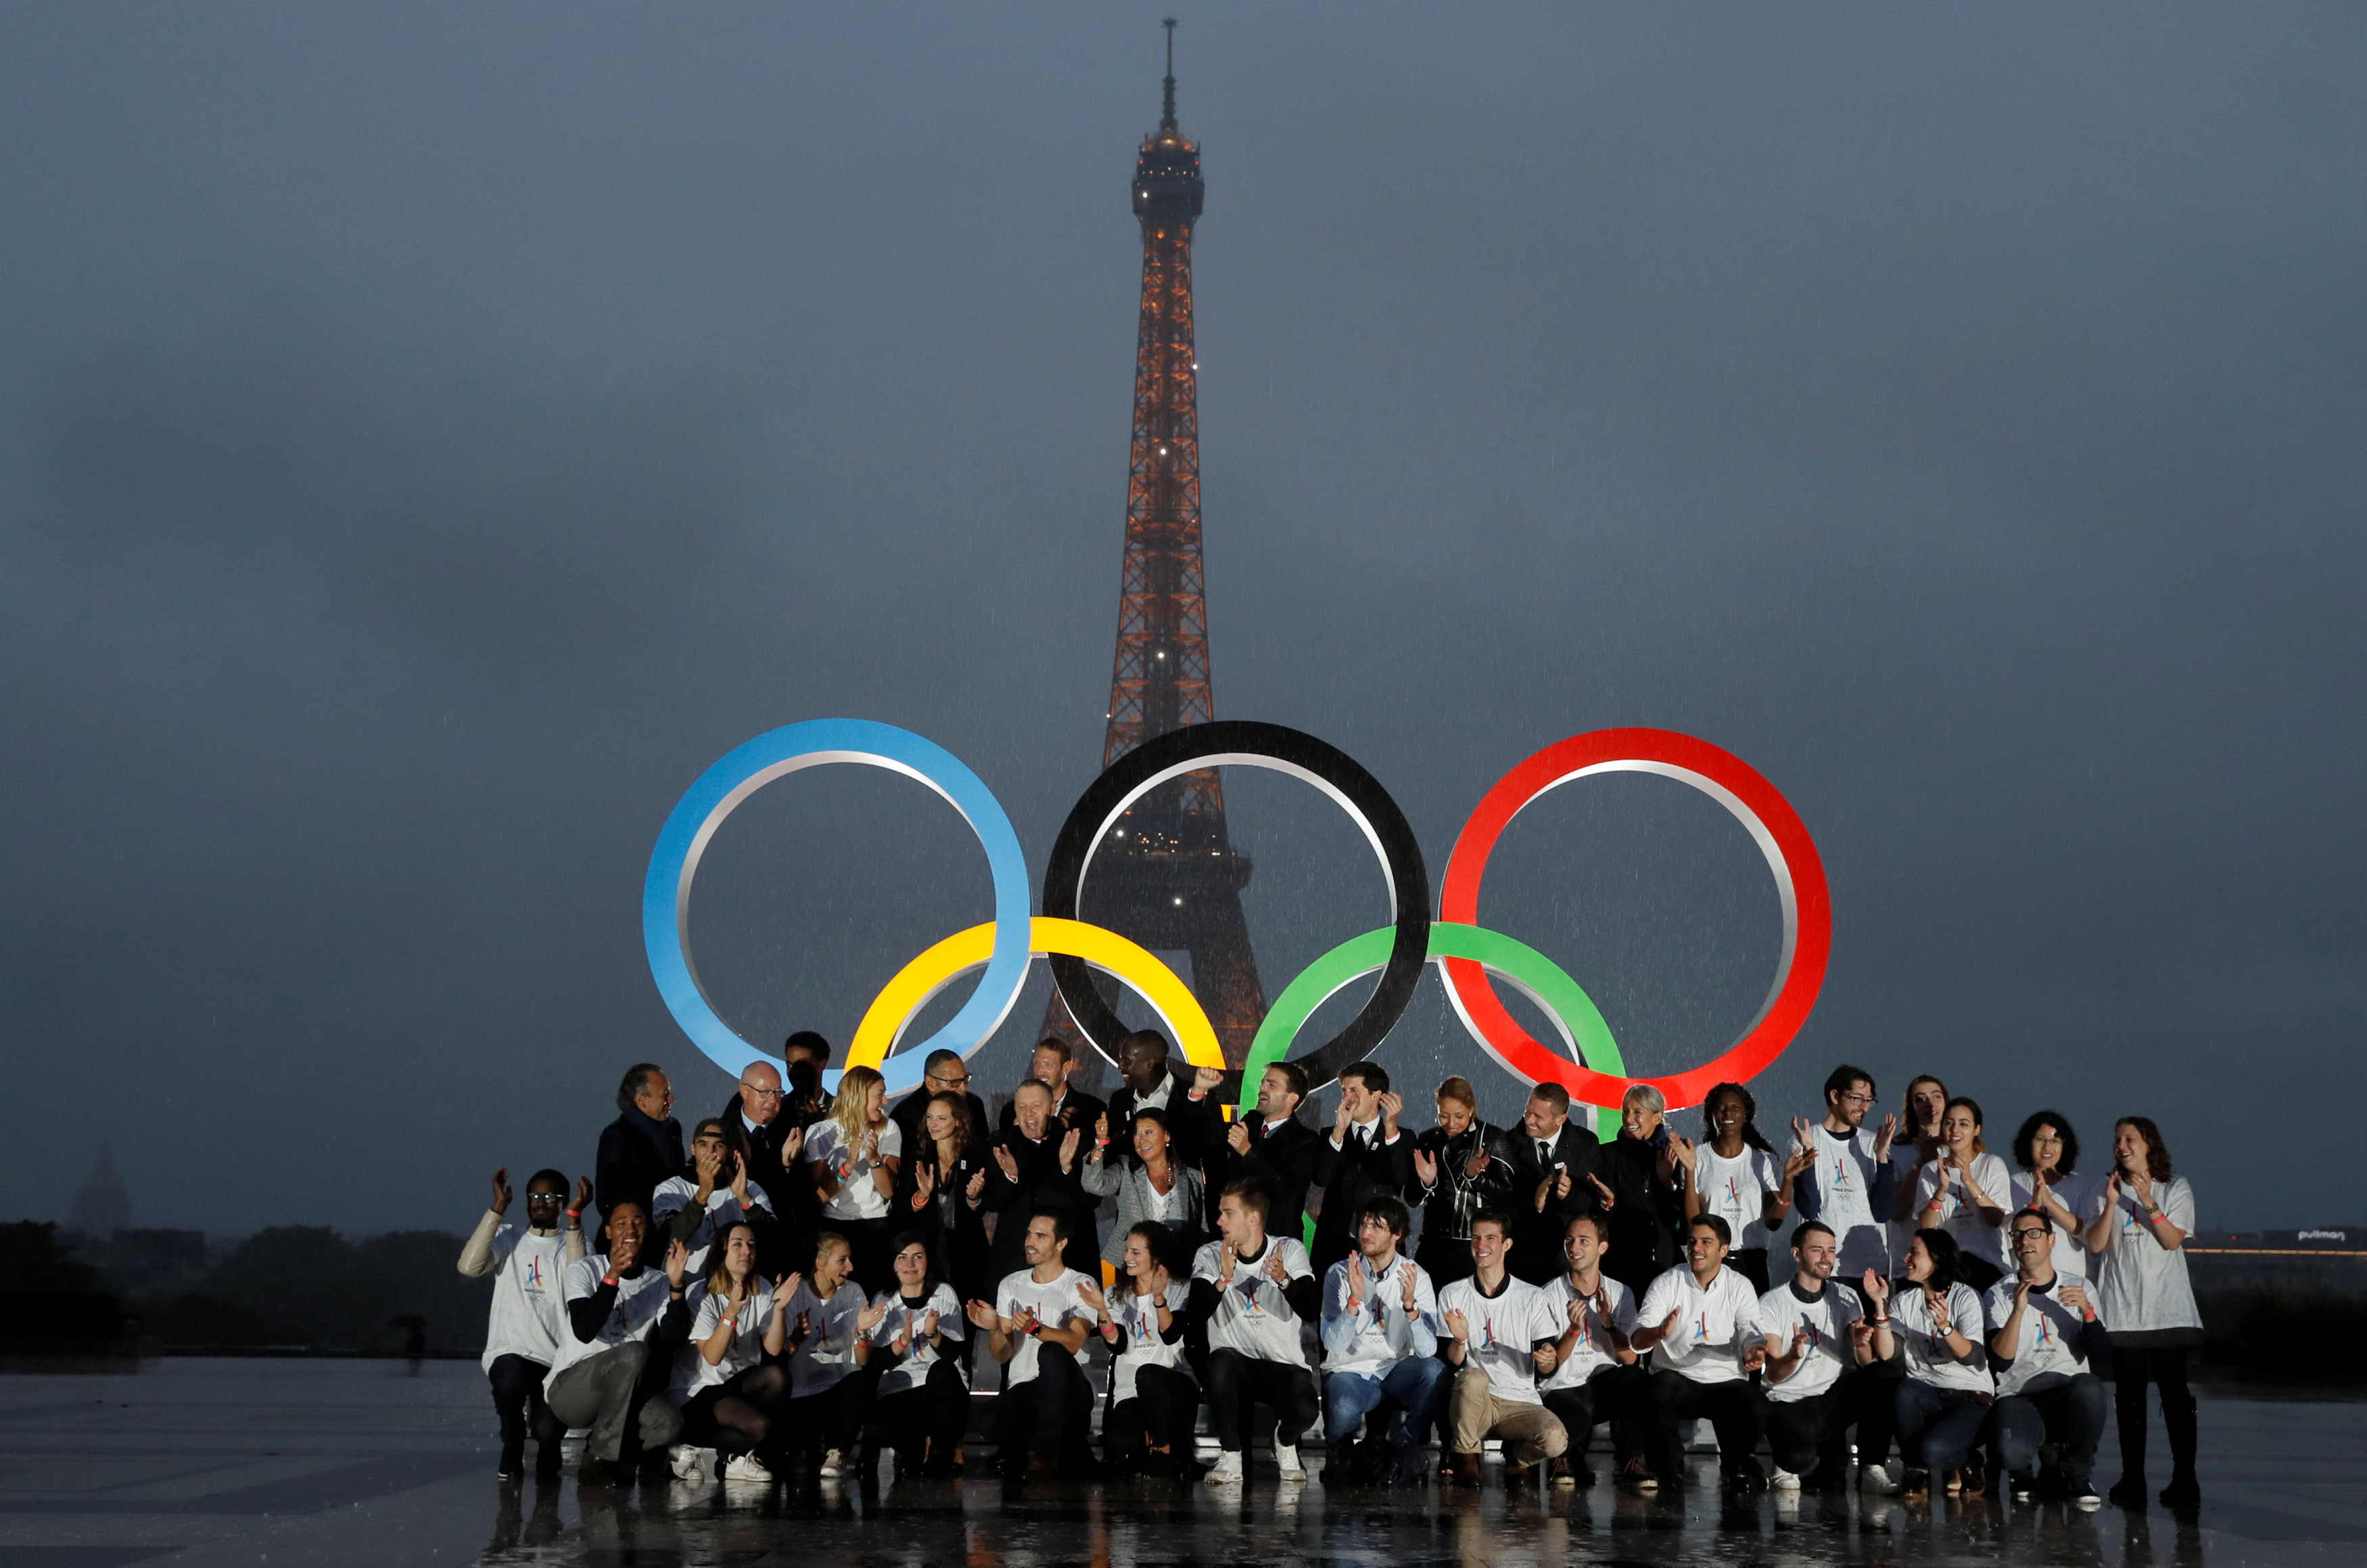 Parisians, athletes and officials pose in front of Olympic rings to celebrate the IOC official announcement that Paris won the 2024 Olynpic bid during a ceremony at the Trocadero square in Paris, France, on Sept. 13, 2017.(REUTERS/Gonzalo Fuentes)